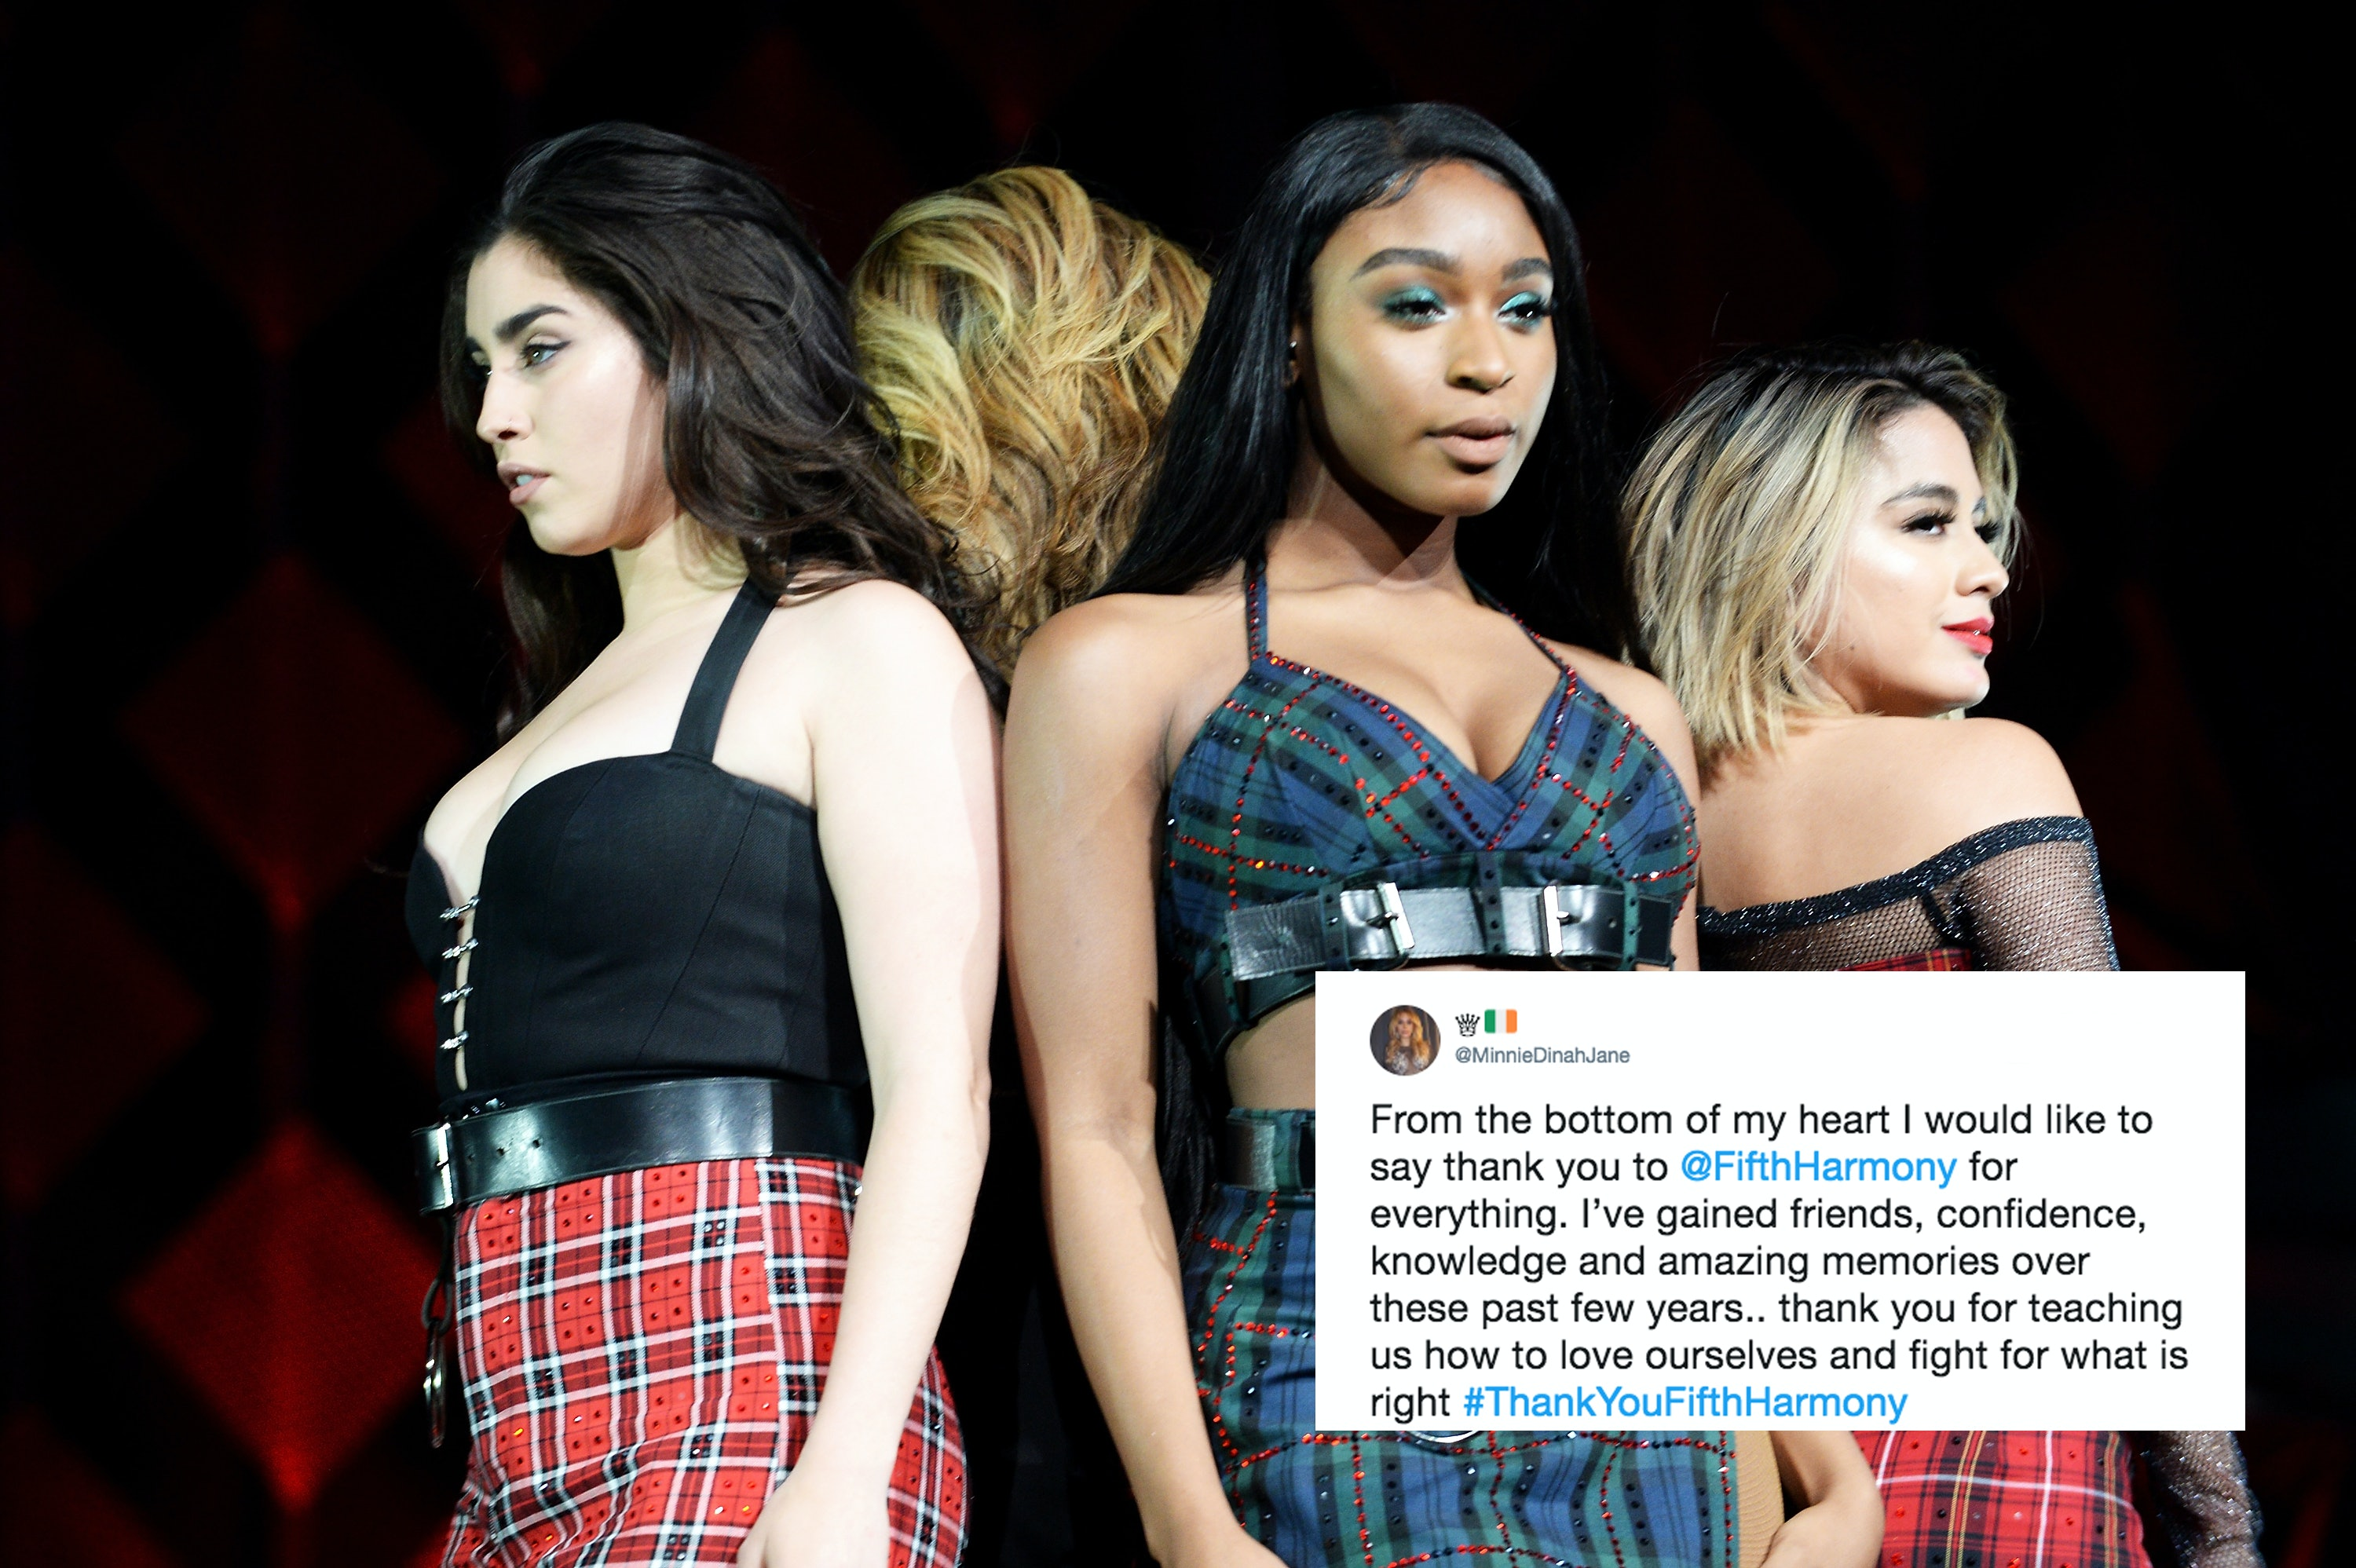 Fifth Harmony's Break Up Announcement Has Fans Thanking The Band For